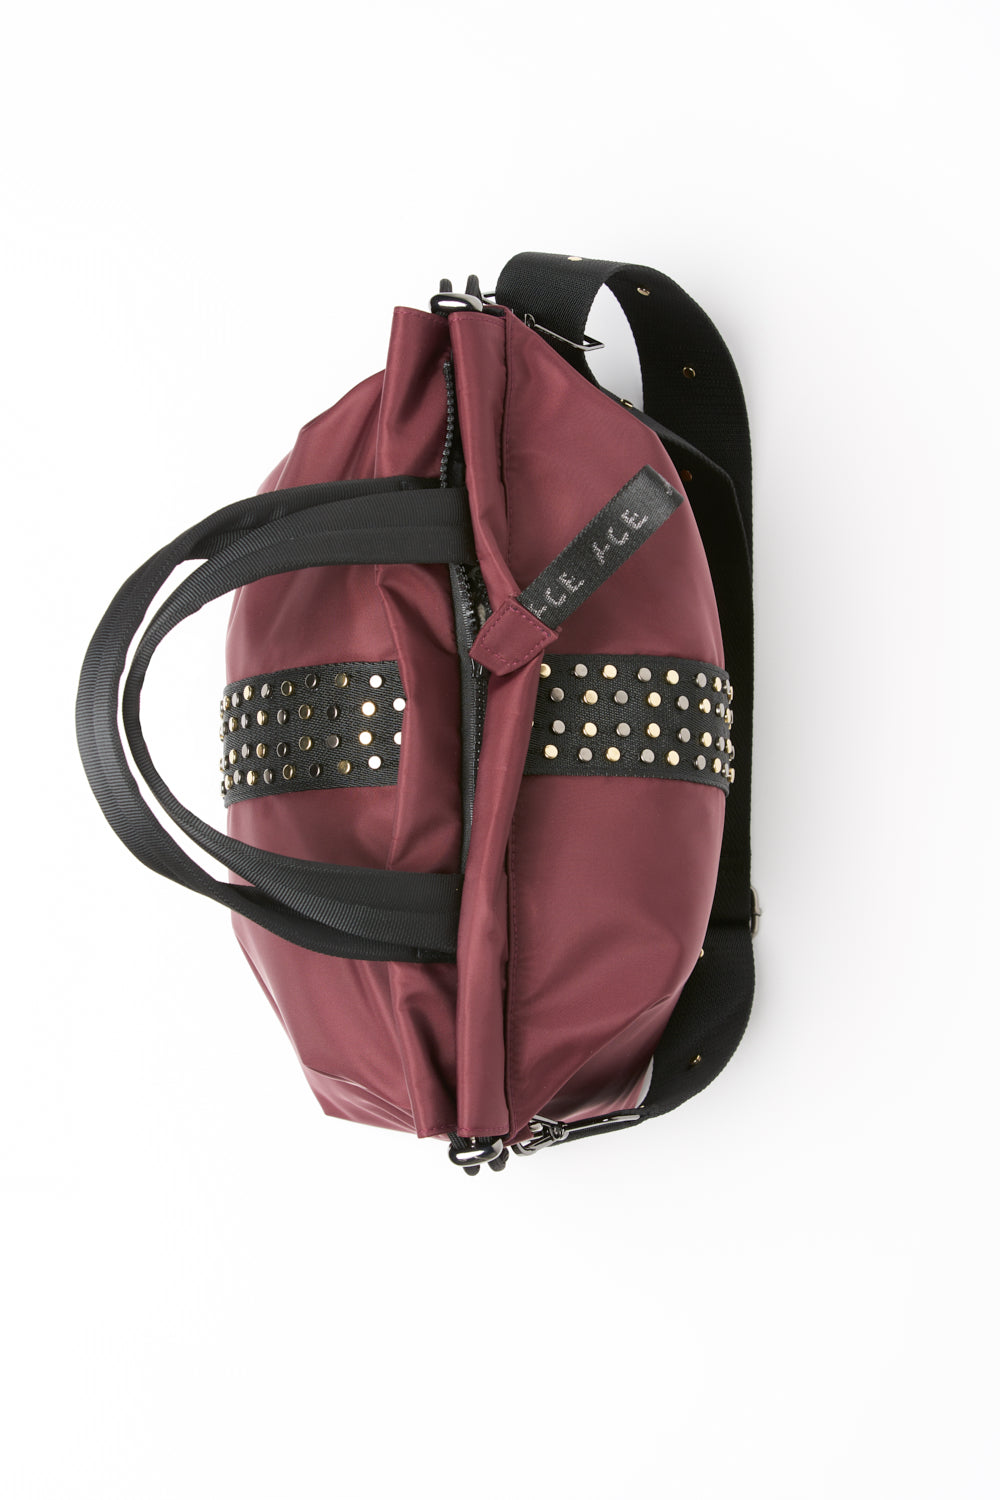 ACE Urban Tote Bag Burgundy bottom view